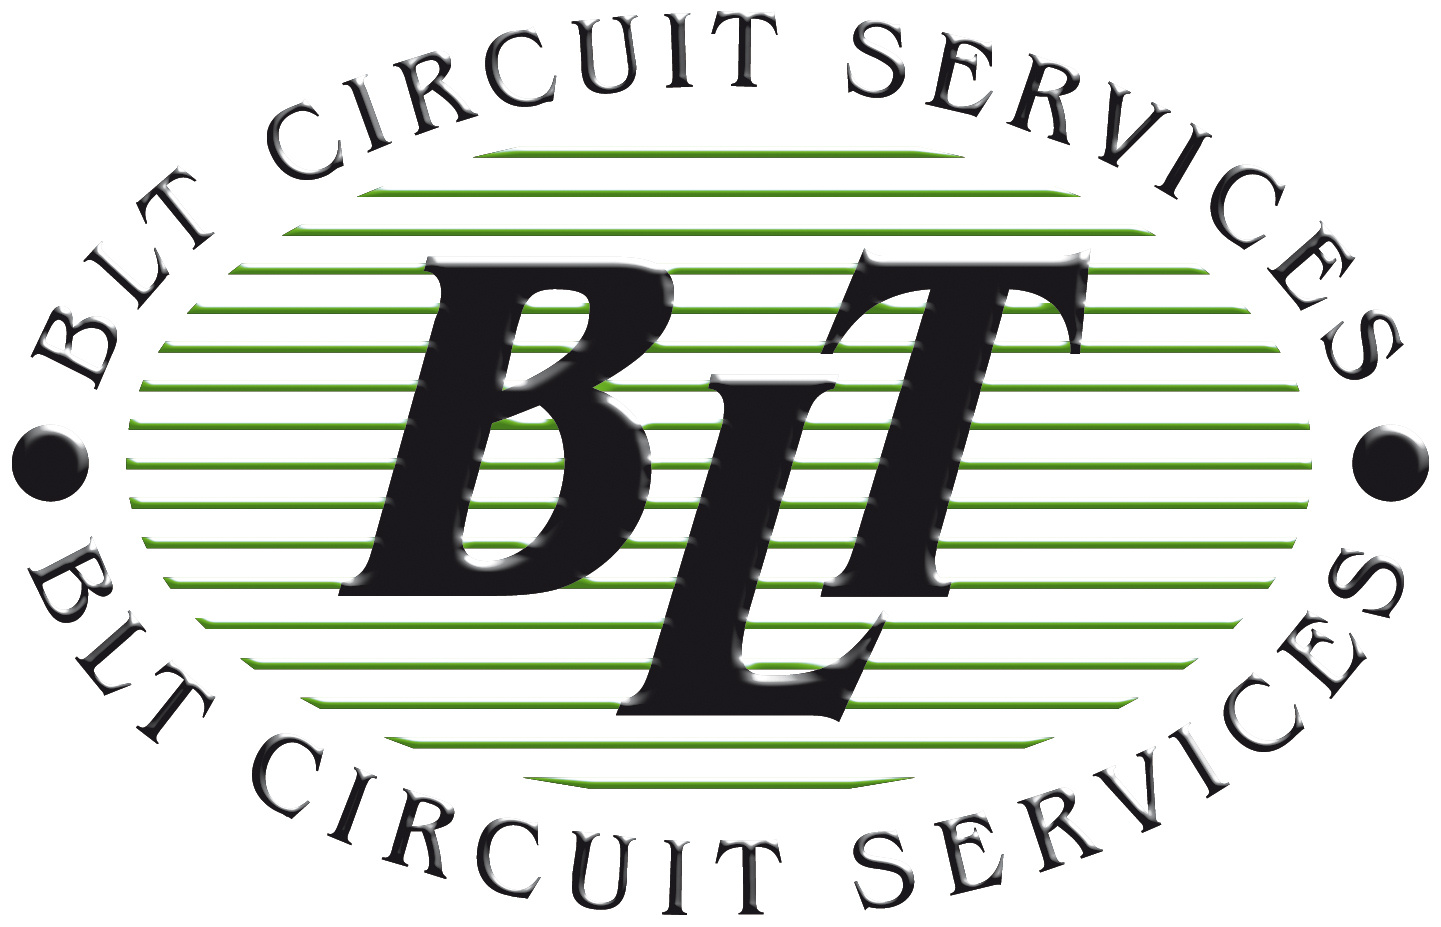 Other Smt Pcb Manufacturing Products And Services Led Light Circuit Board Hebei For Sale Blt Ltd